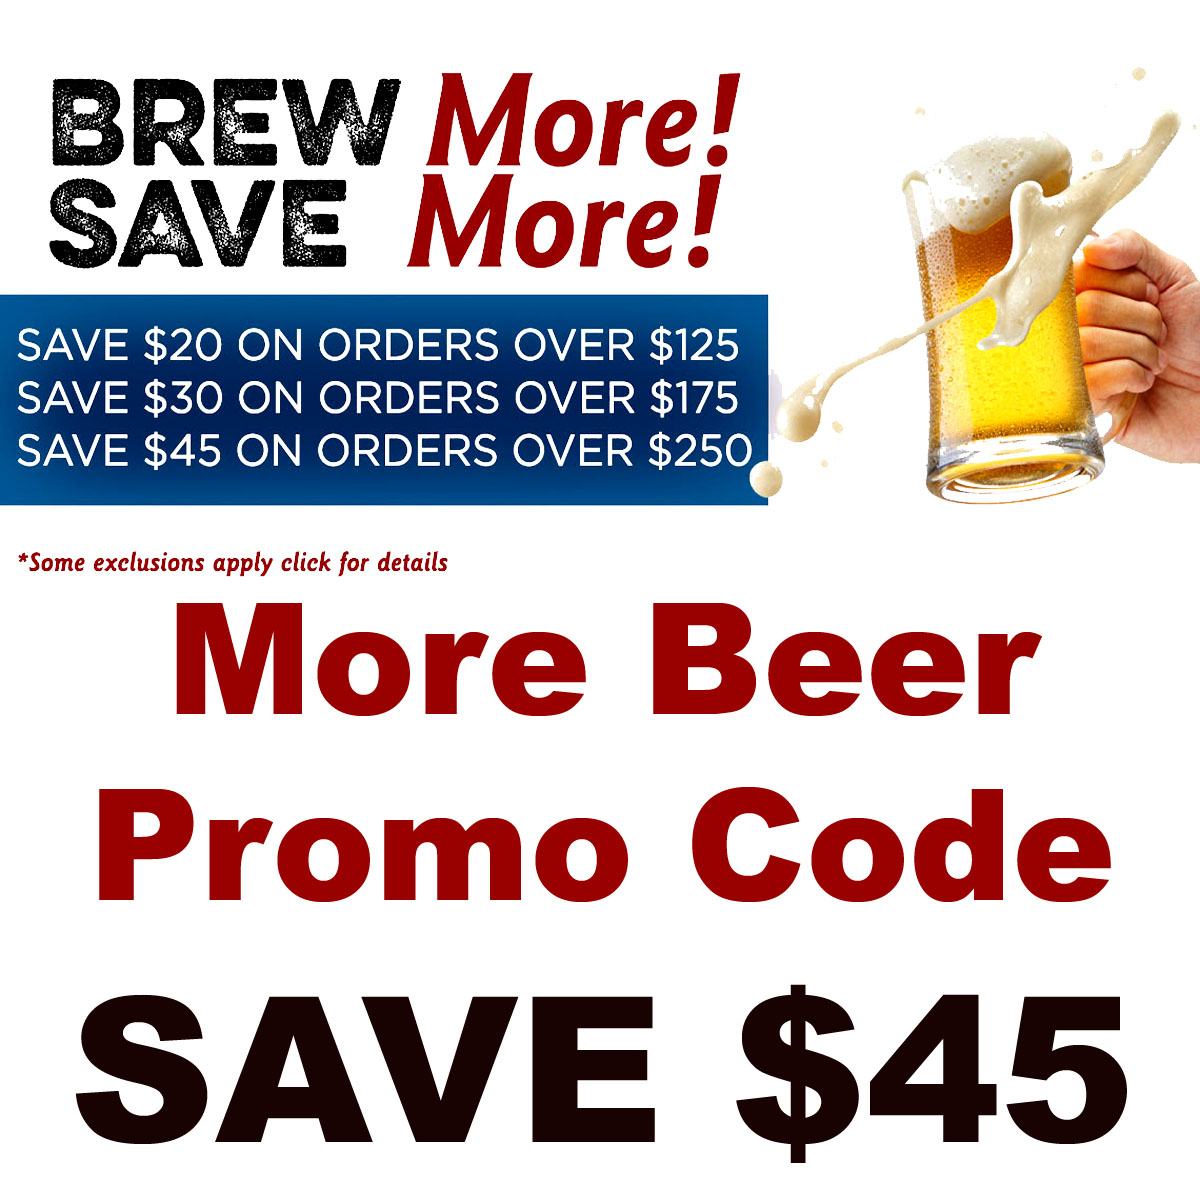 MoreBeer Save as much as $45 on your home brewing purchase with this MoreBeer.com promo code Coupon Code